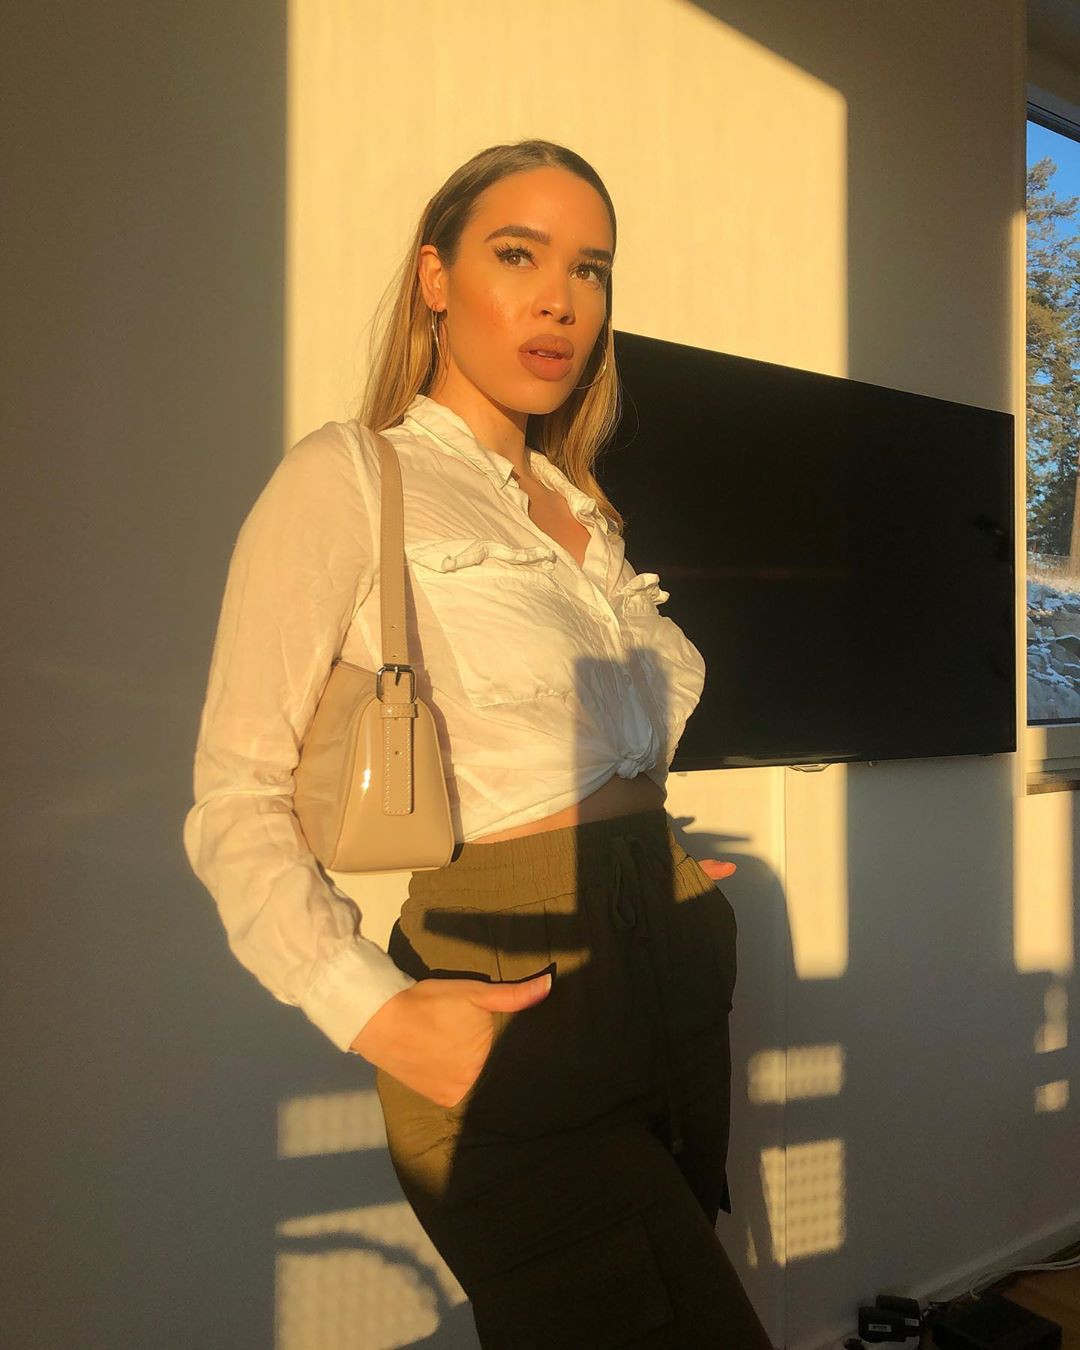 Isabelle Tounsi Long Hair Style, outfit ideas, white-collar worker